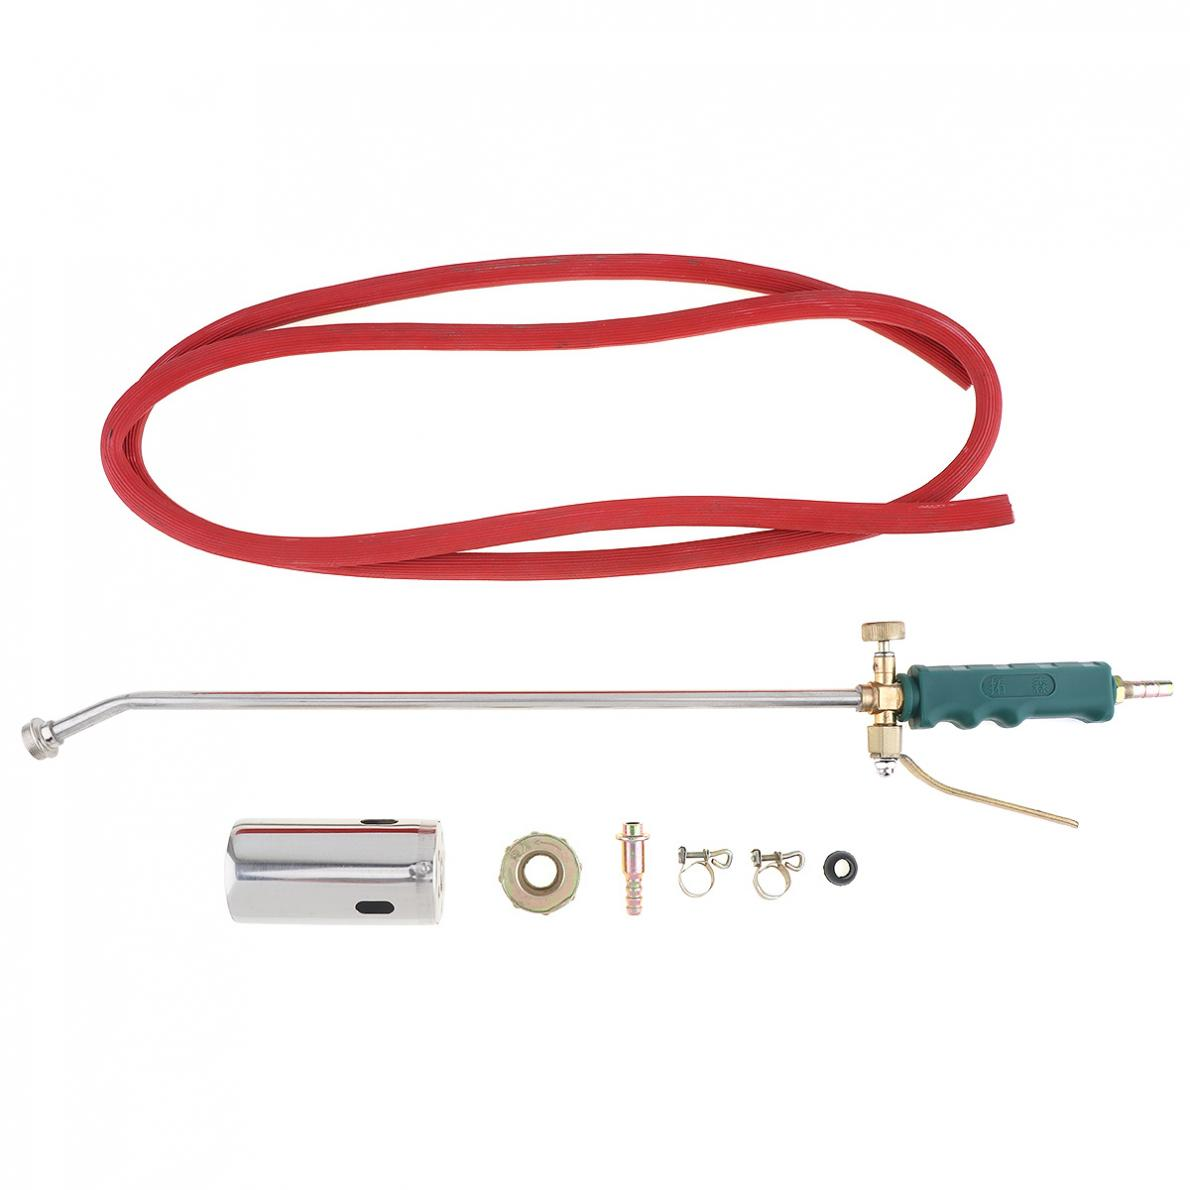 50mm Double Switch Type Liquefied Gas Torch Welding Spitfire-Gun Support Oxygen Acetylene Propane For  Barbecue /Hair Removal